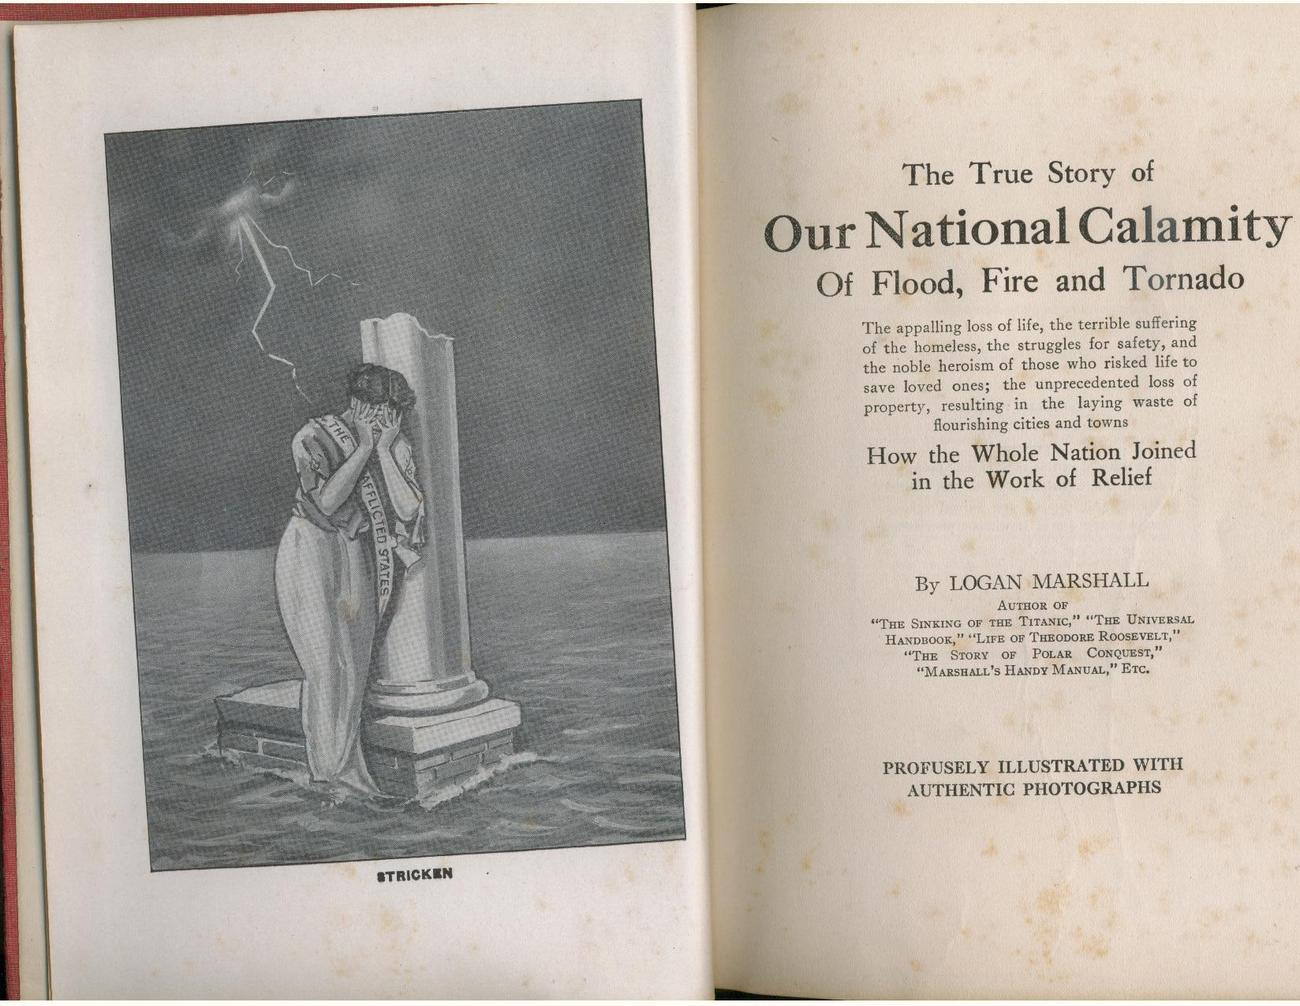 OUR NATIONAL CALAMITY--1913--natural disasters, illustrated - floods, tornadoes